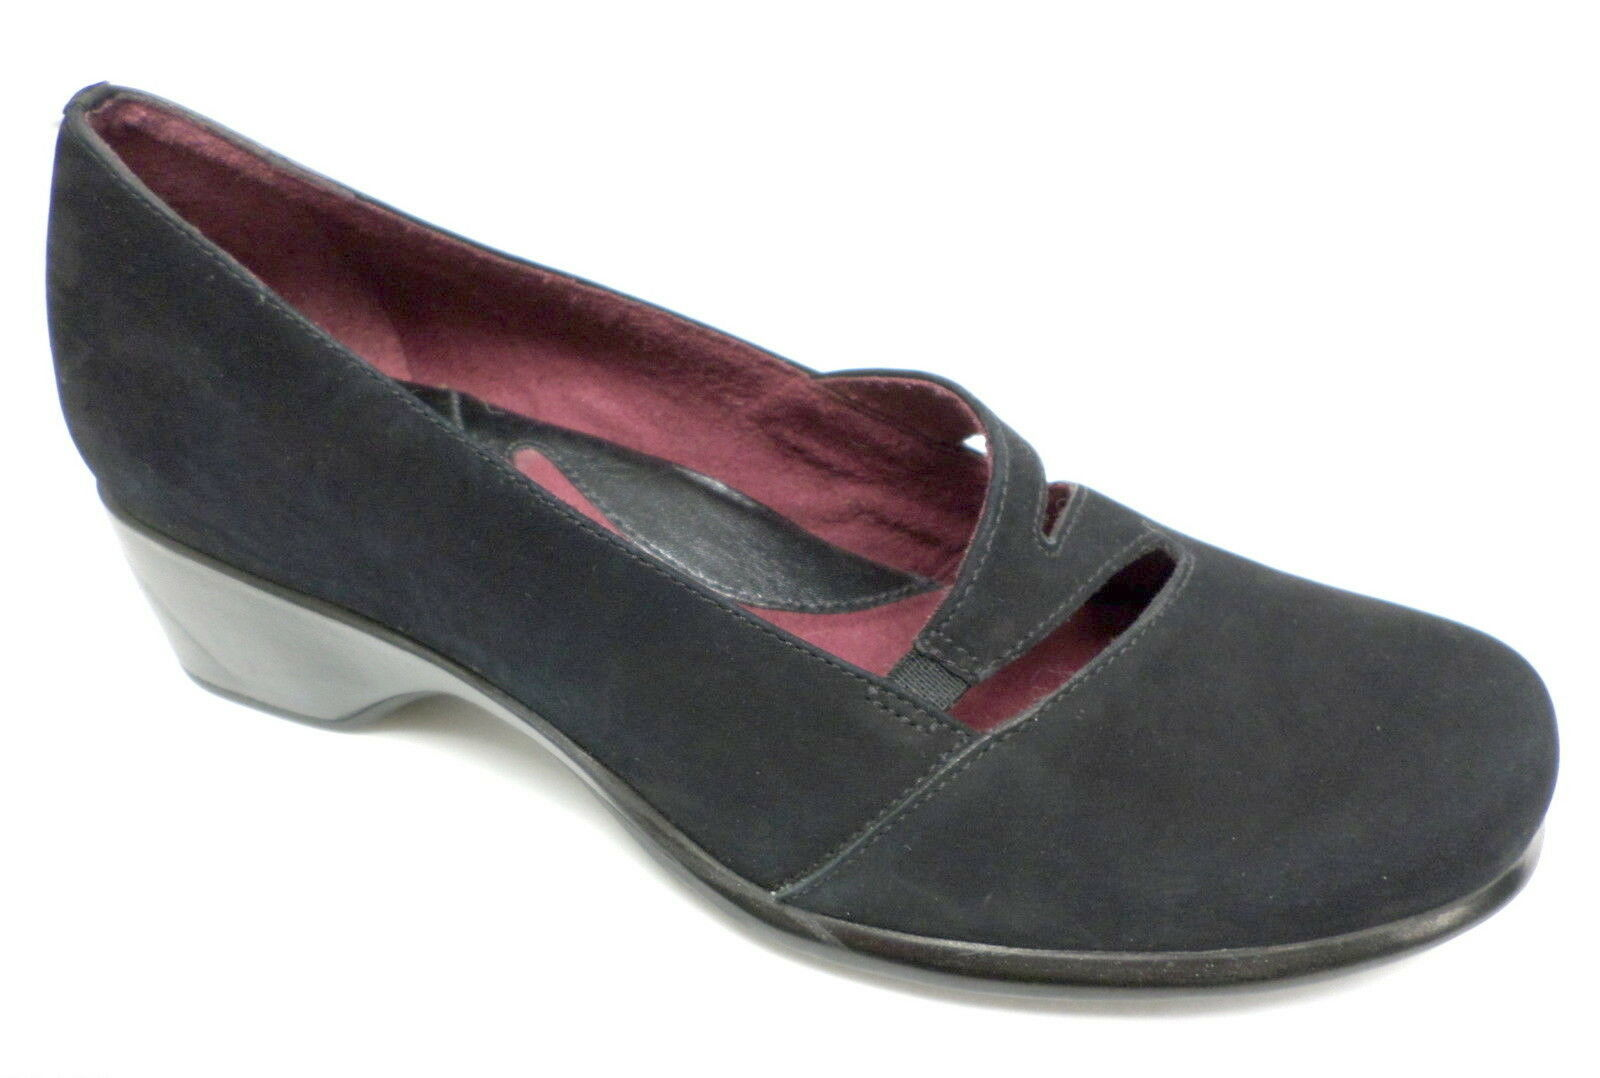 Primary image for Clarks Artisan Black Ballet Flats Size 6 or Shoes